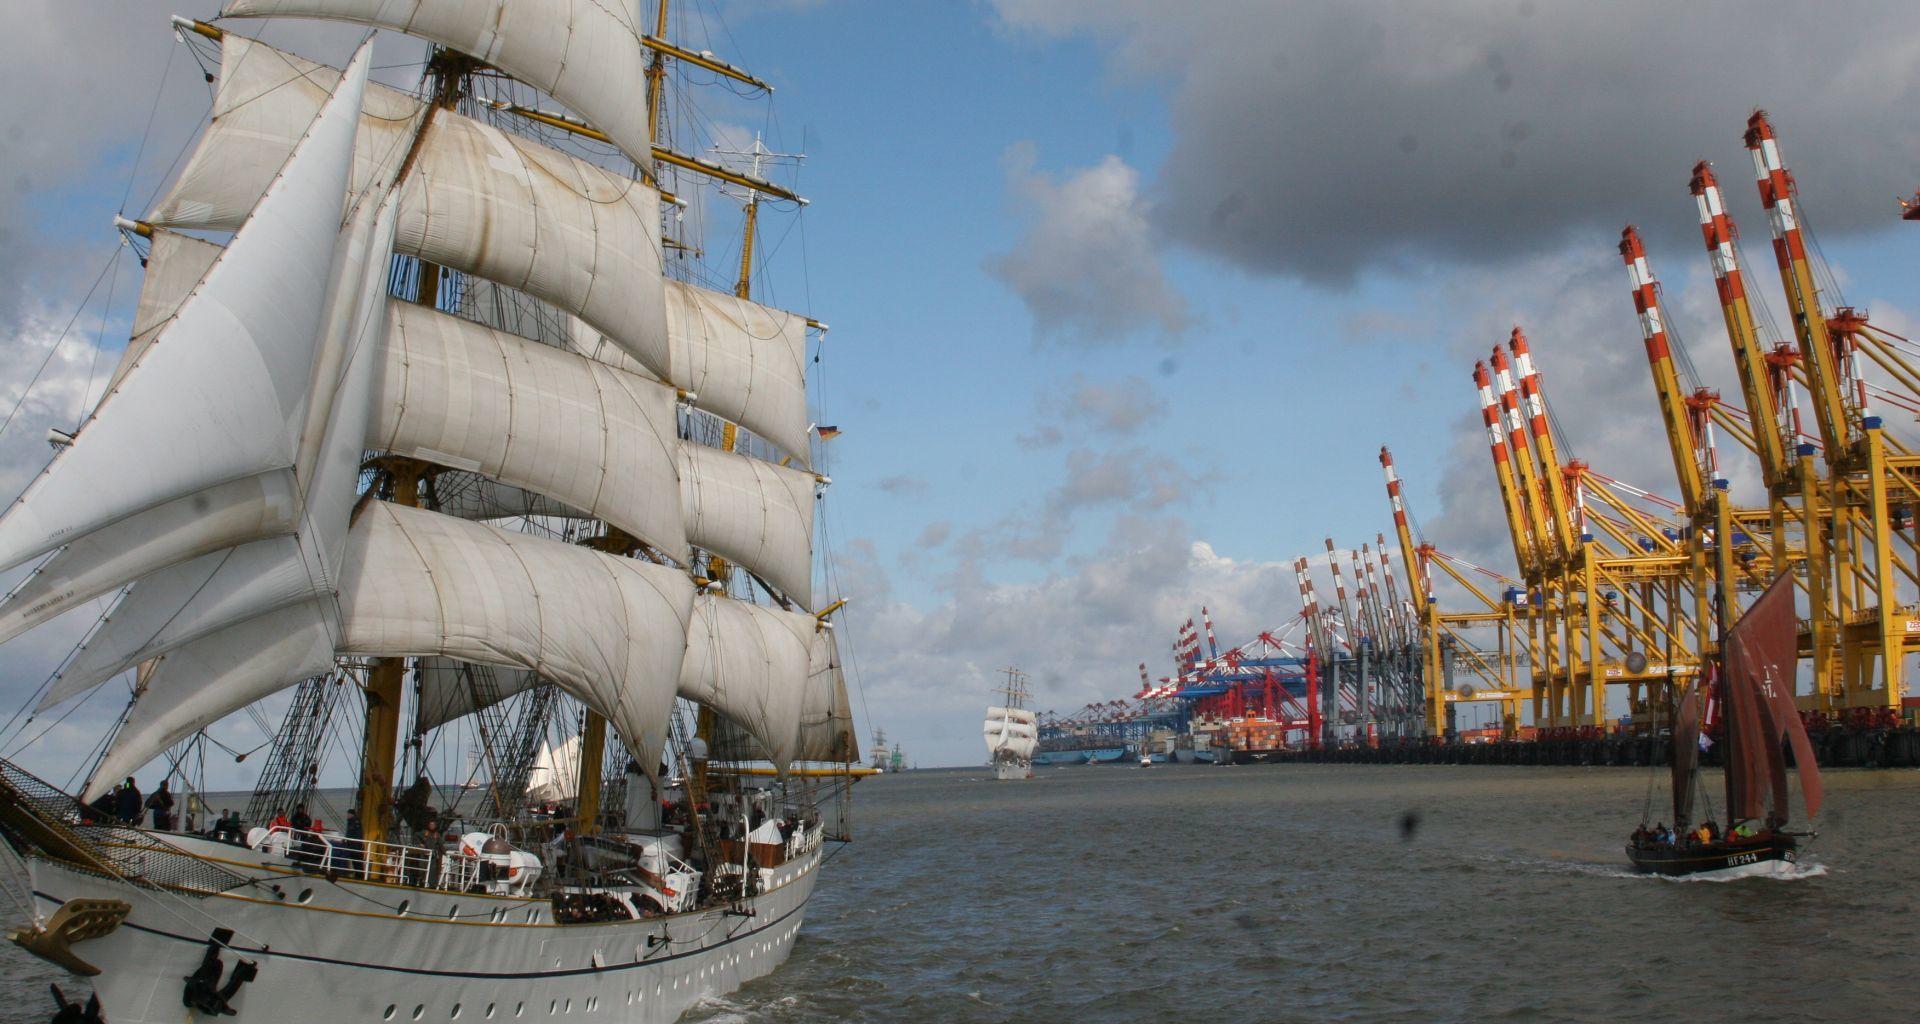 A sailing ship on a cruise, in the background a container terminal.